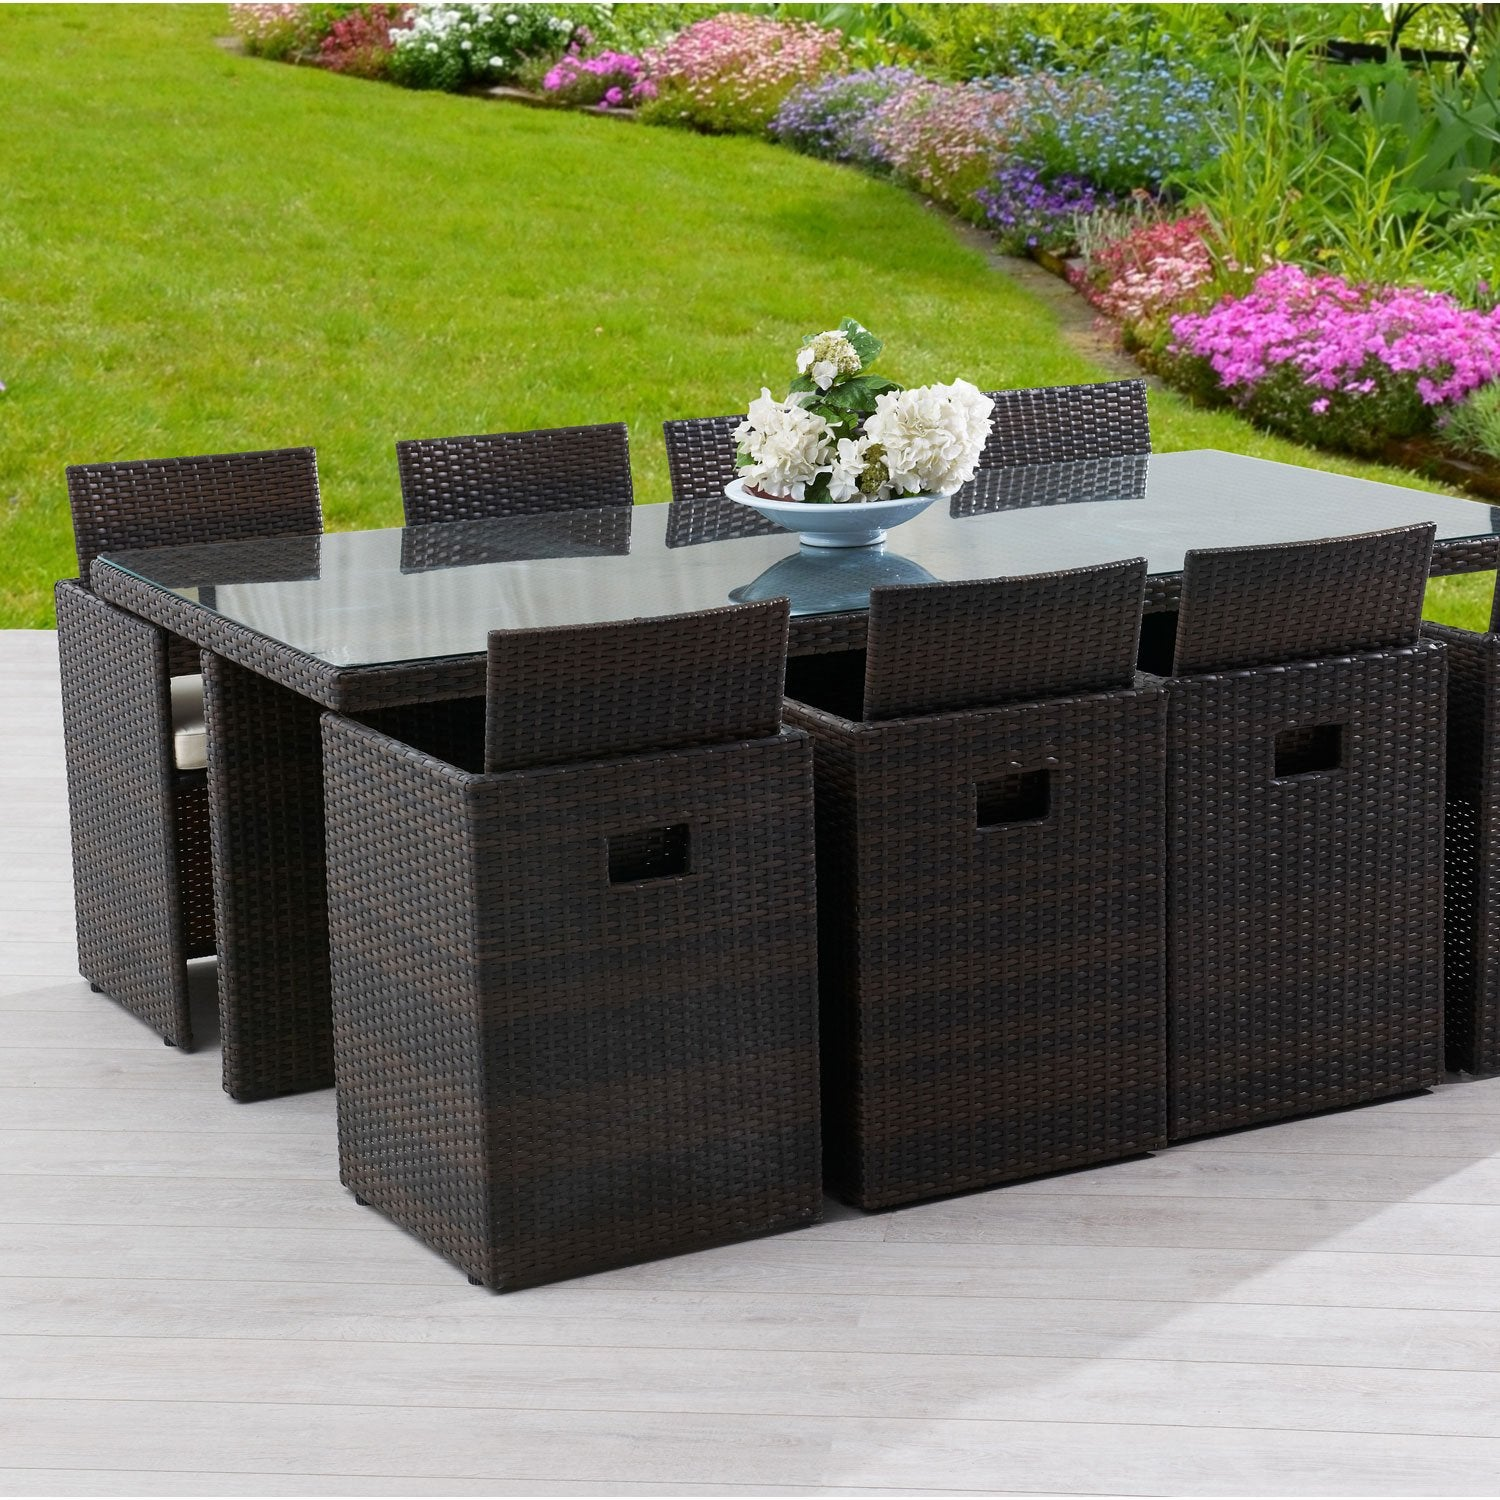 Salon de jardin encastrable r sine tress e marron 1 table for Meuble jardin leroy merlin